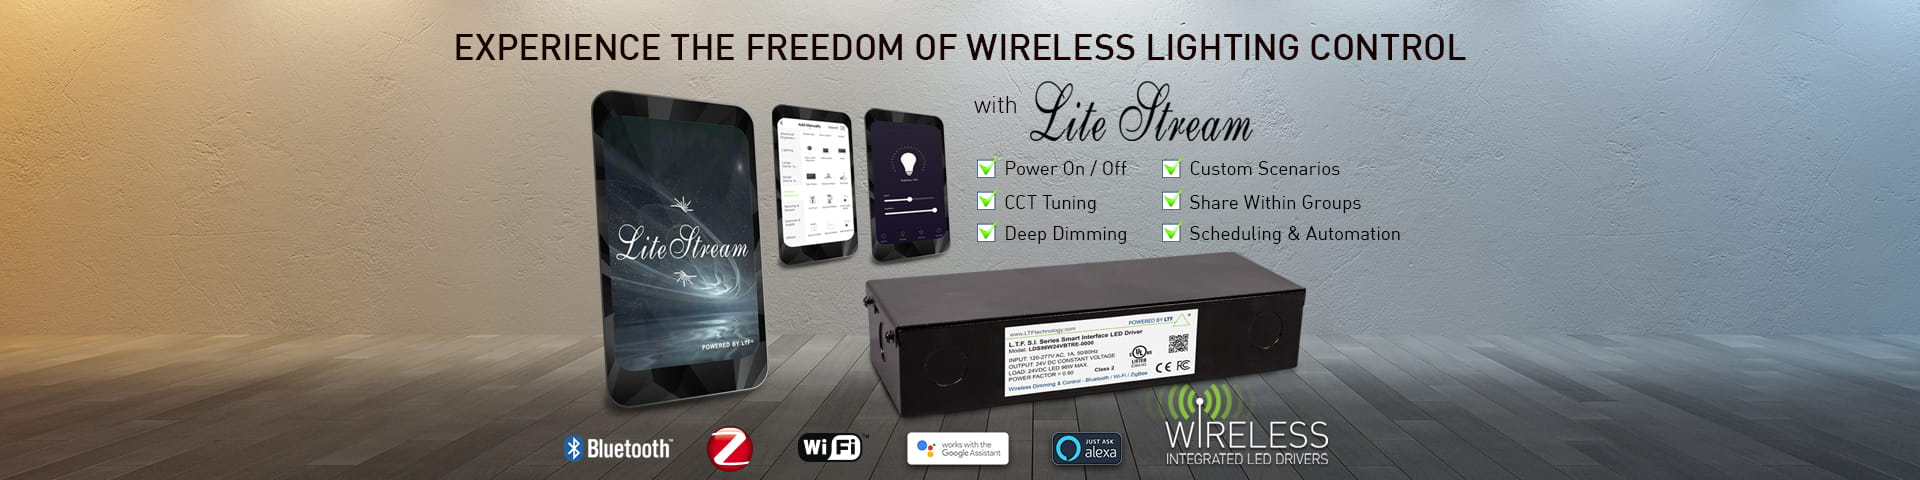 Experience the Freedom of Wireless Lighting Control with Lite Stream